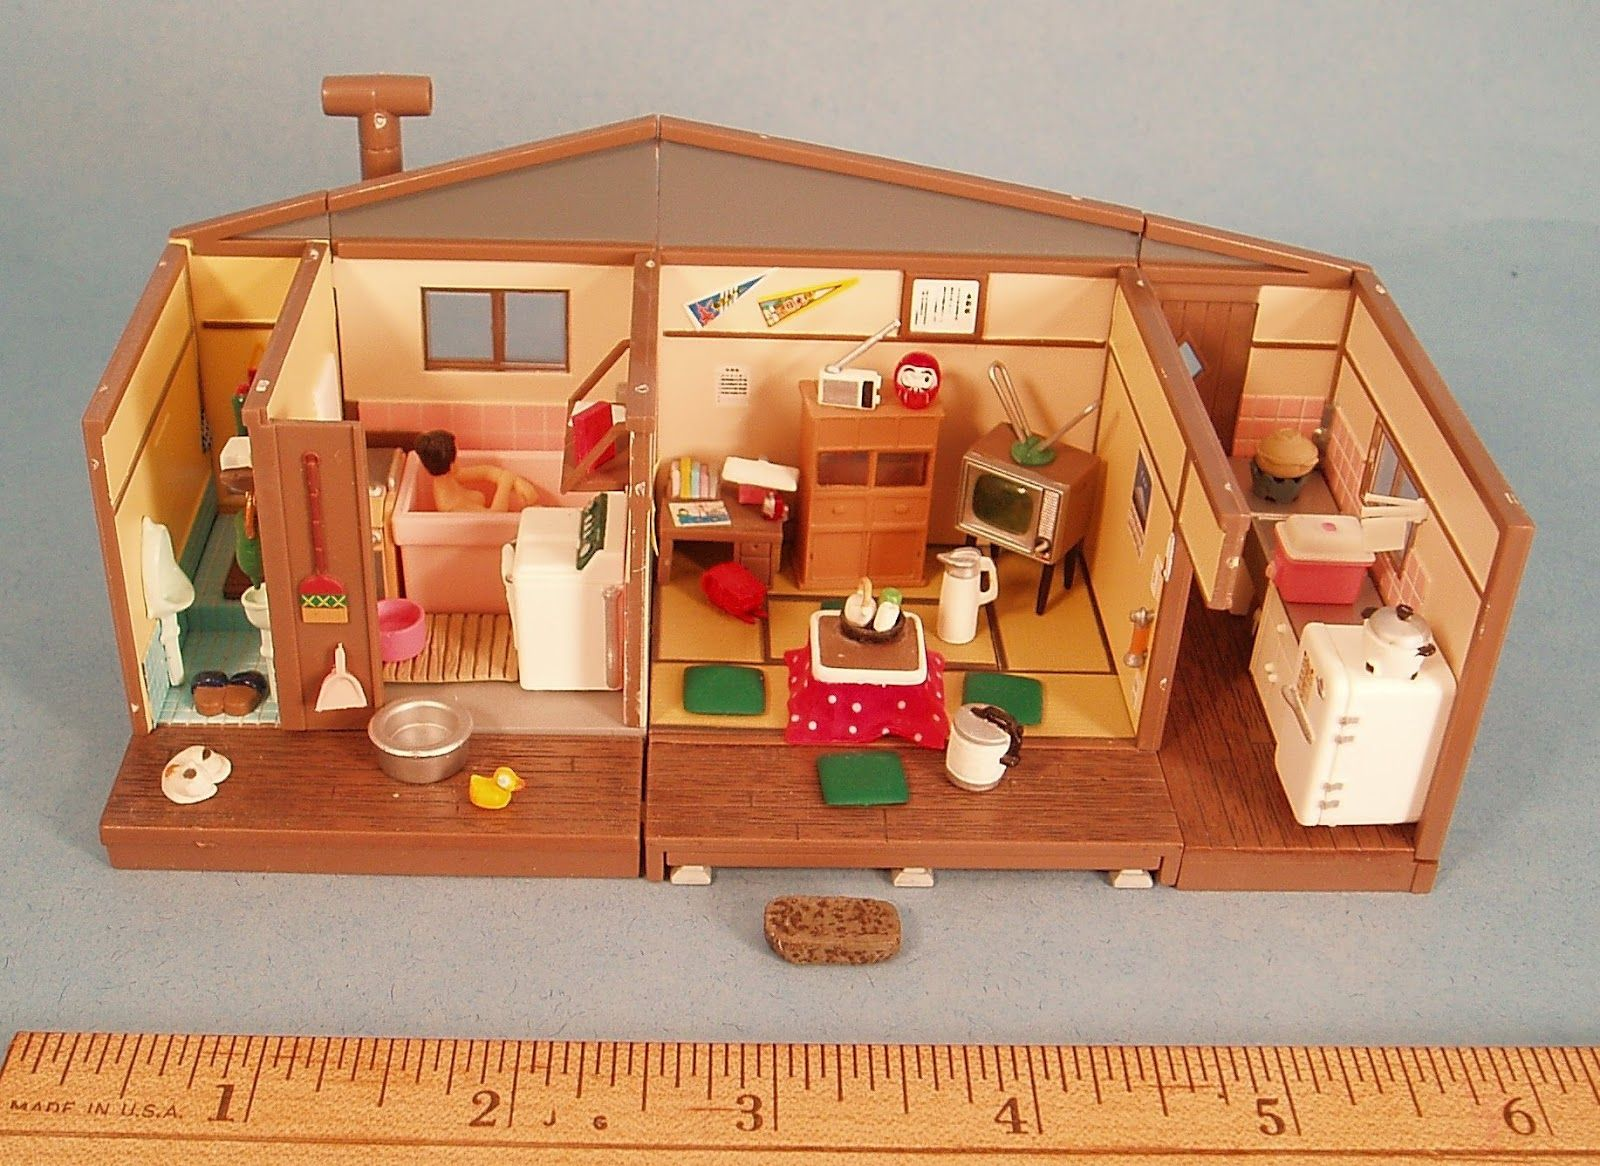 Delicious Diy Miniature Wooden Doll House Furniture Kits Toys Handmade Craft Miniature Model Kit Dollhouse Toys Gift For Children Various Styles Toys & Hobbies Doll Houses